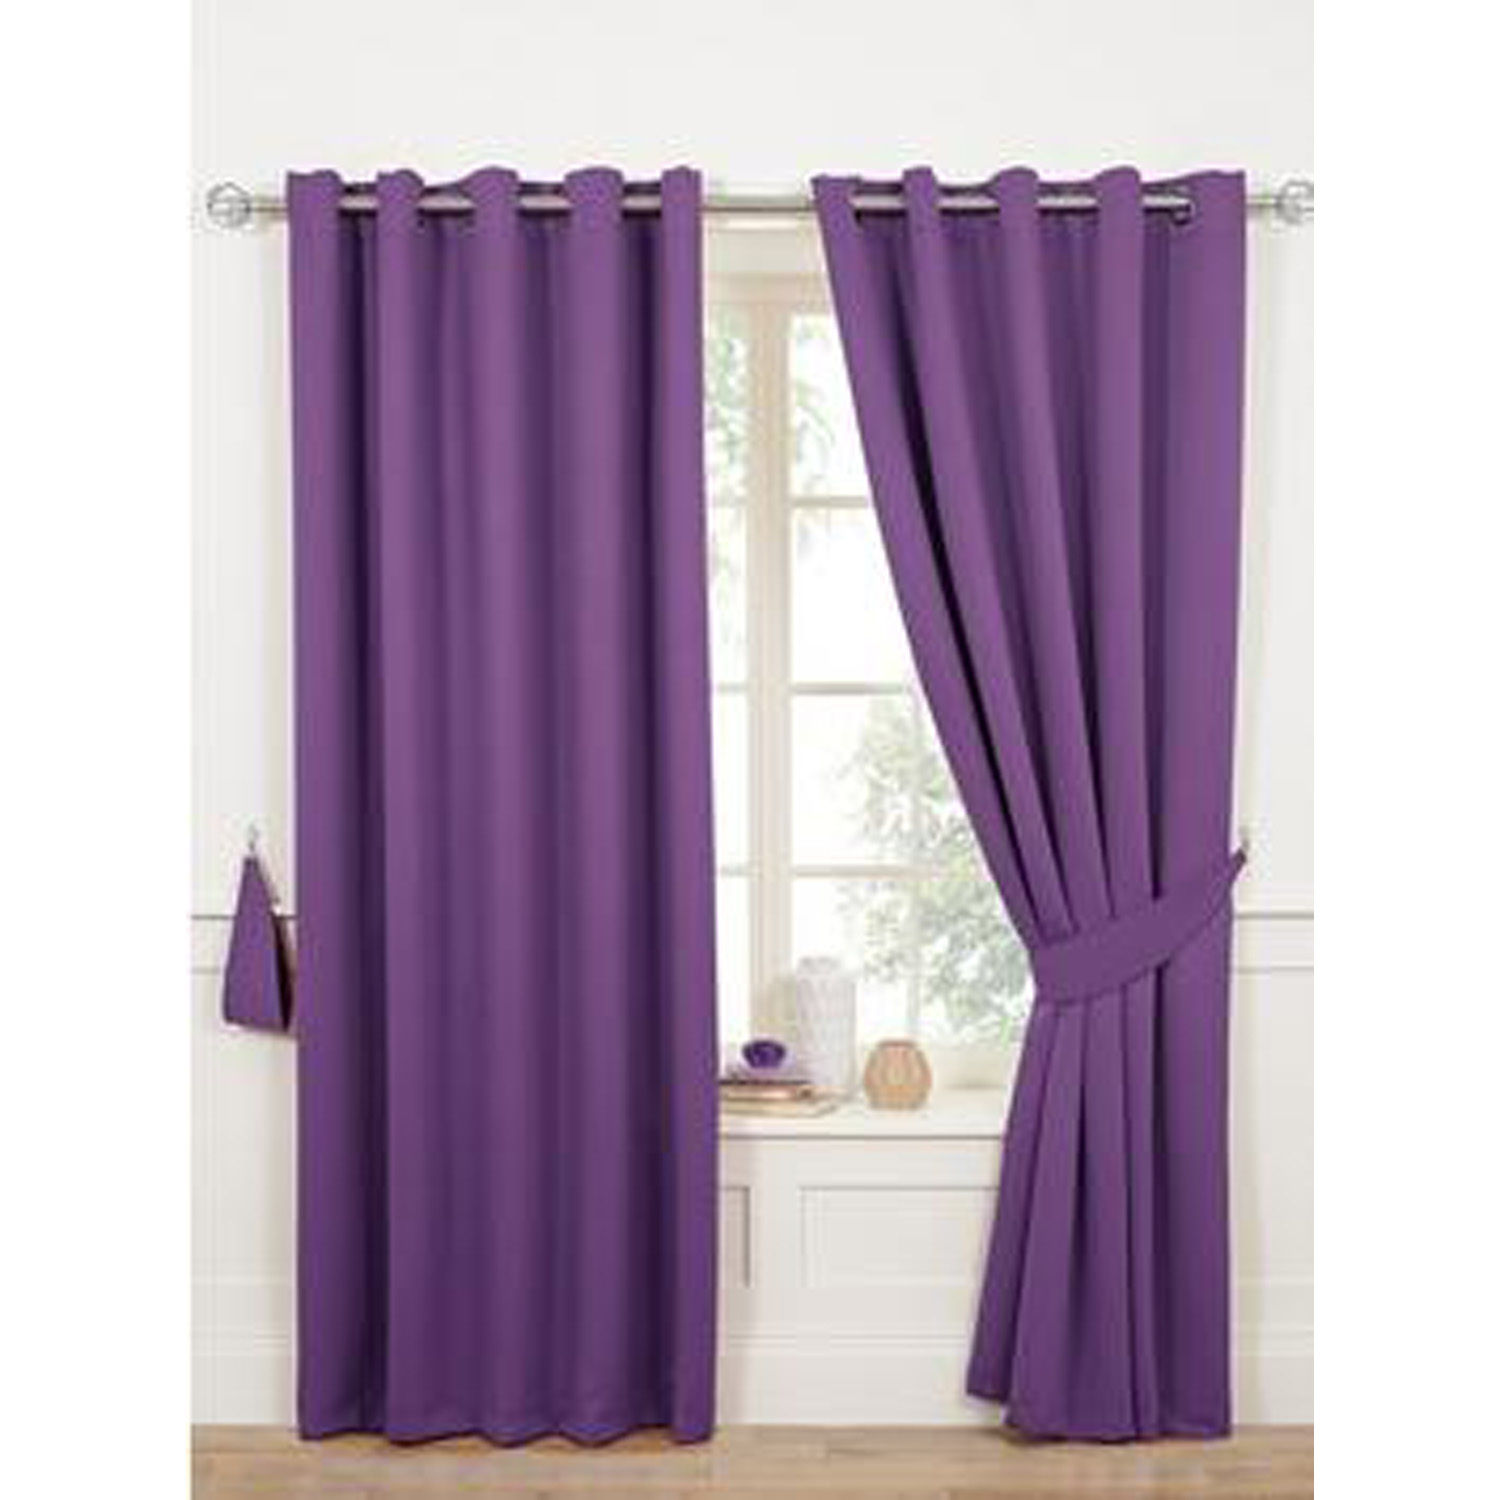 Woven Blackout Ring Top Curtains Door Curtains Insulate Block Out The Light Ebay